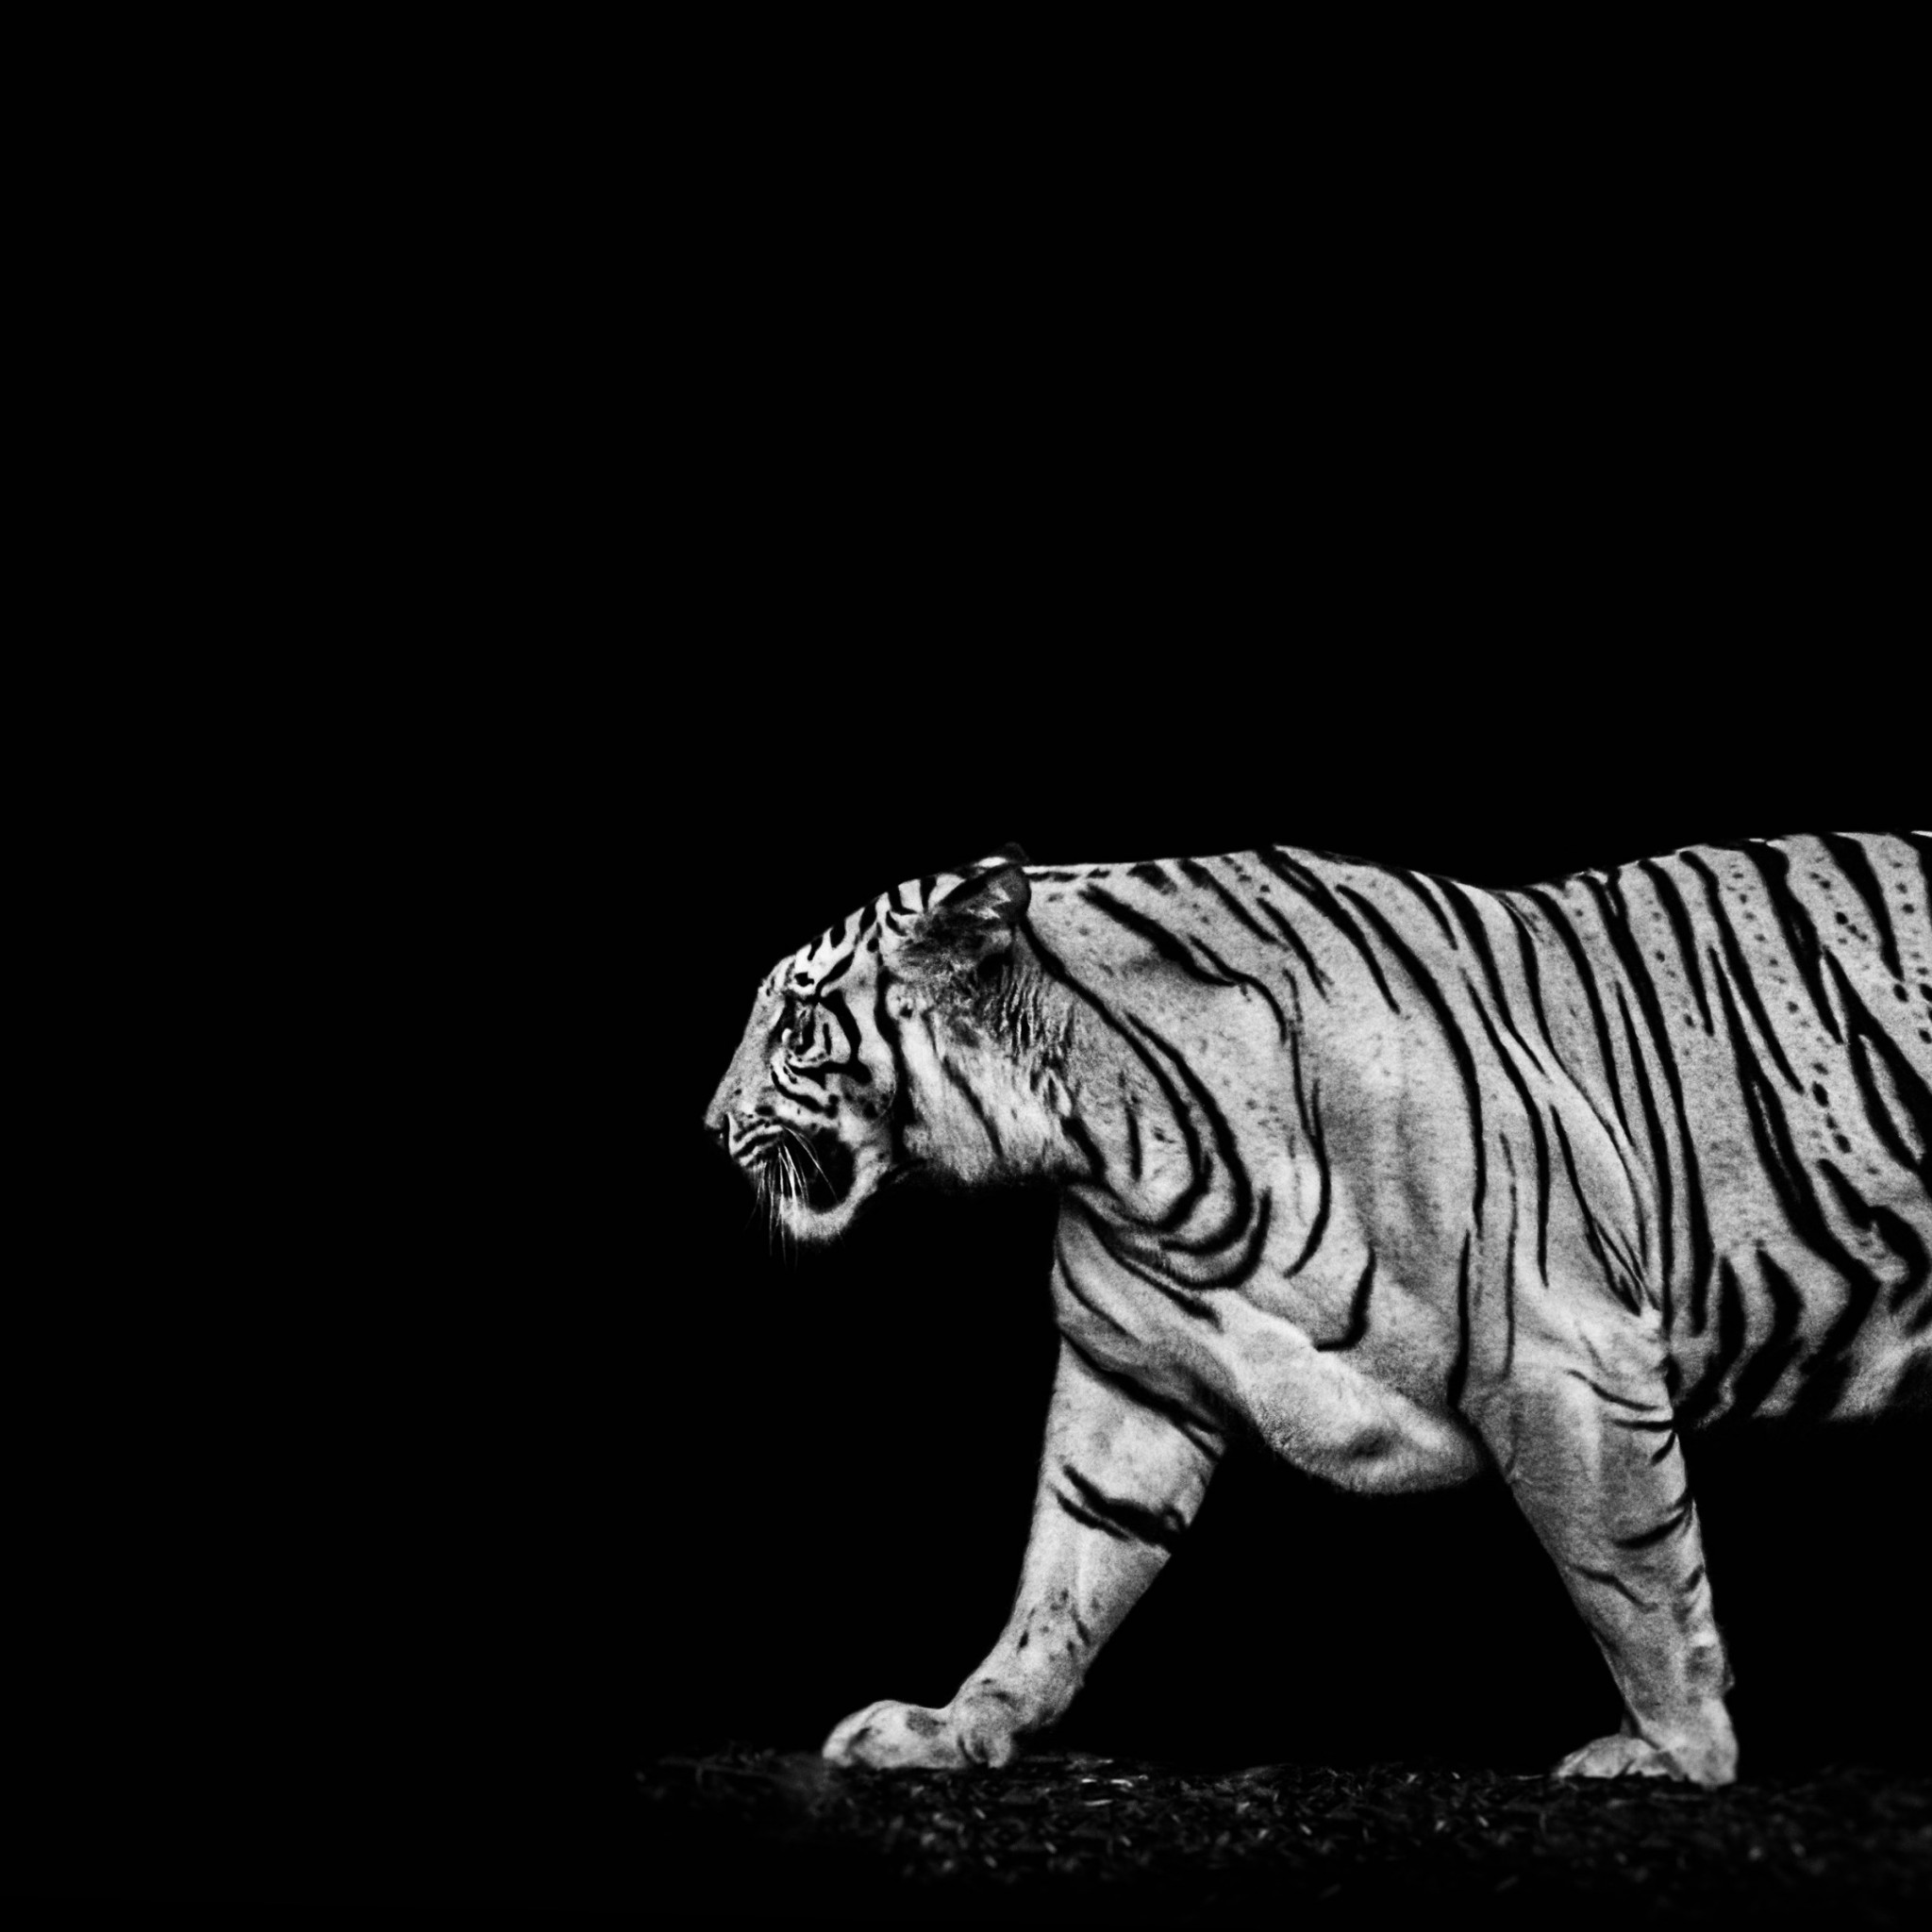 Tiger in the darkness | 2048x2048 wallpaper